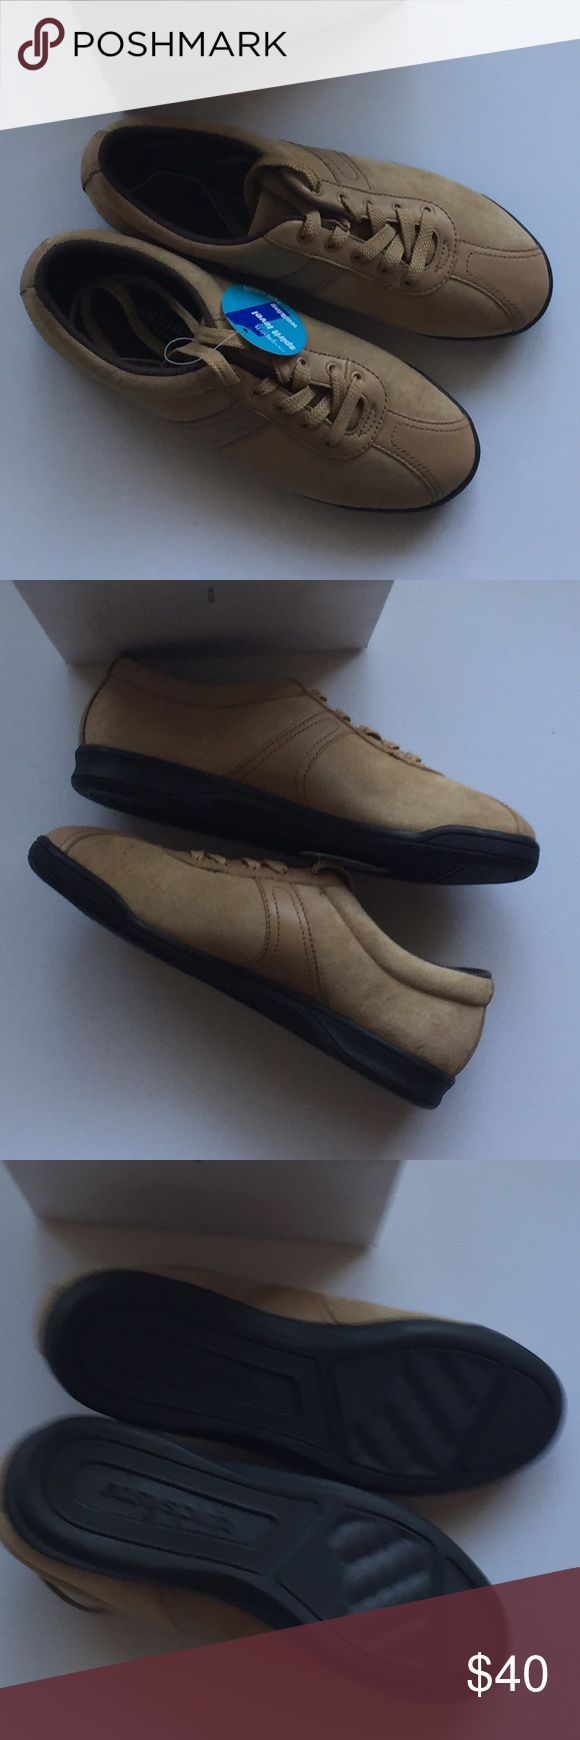 Tan colored leather, Easy Spirit shoes. New in box Easy Spirit Shoes Flats & Loafers